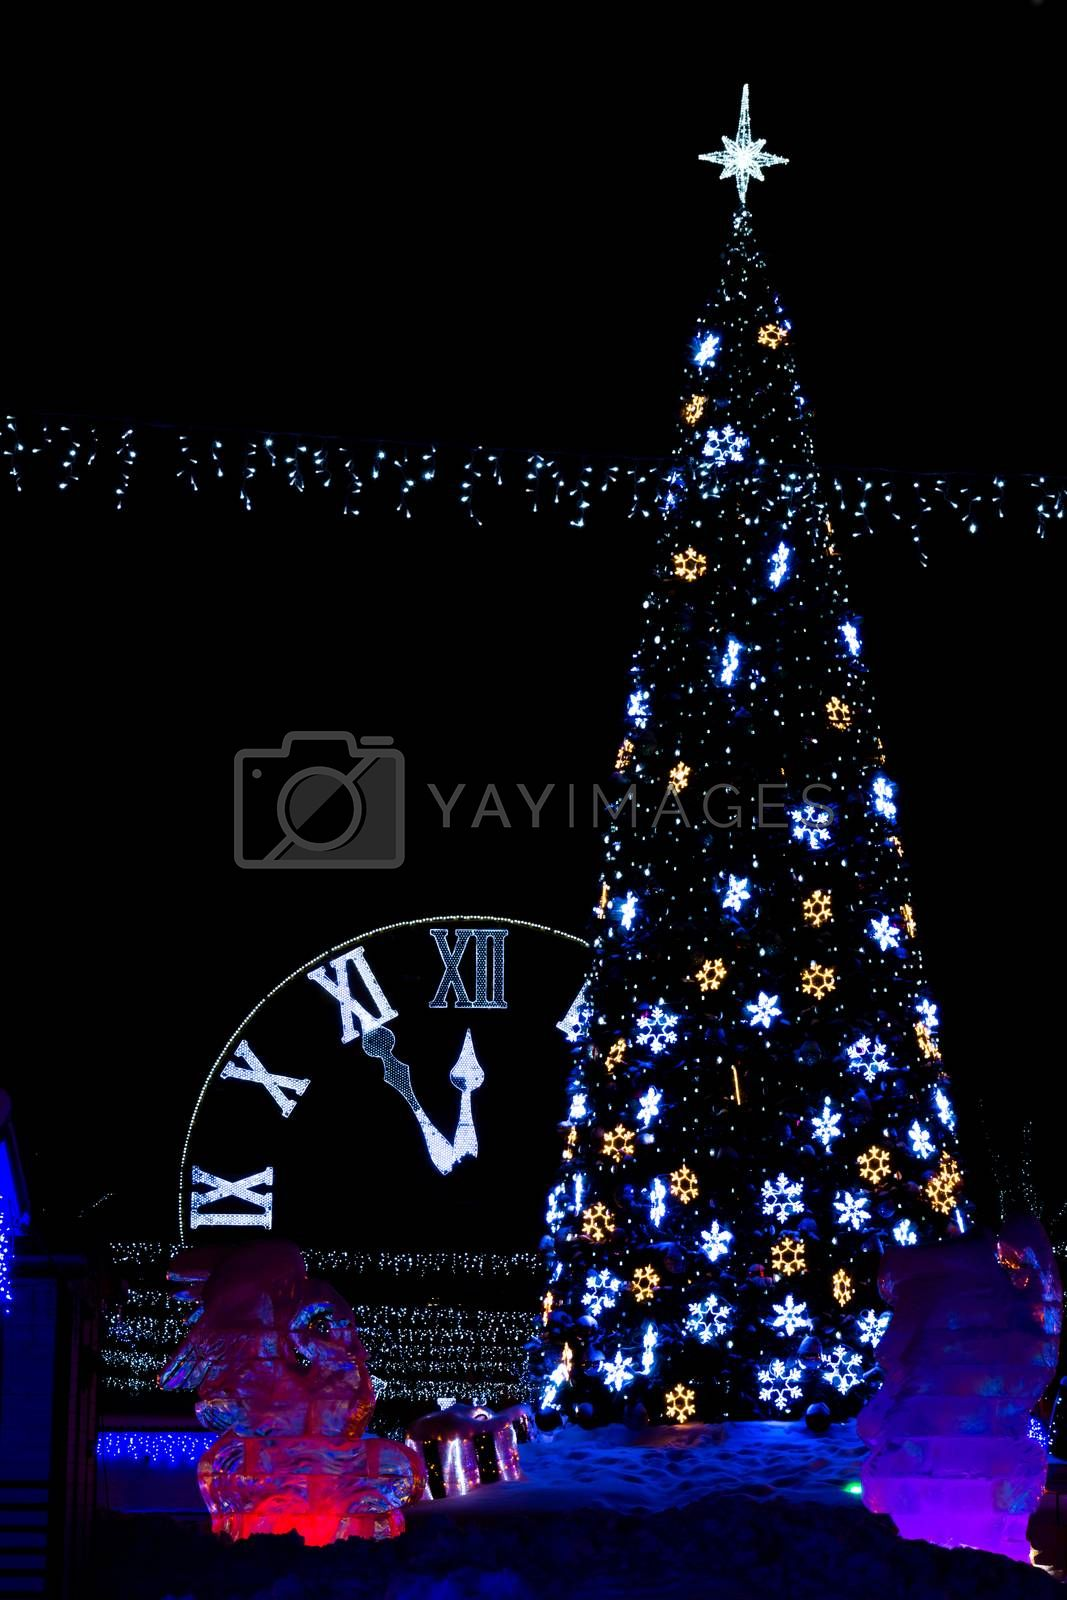 The photograph shows the tree with clock